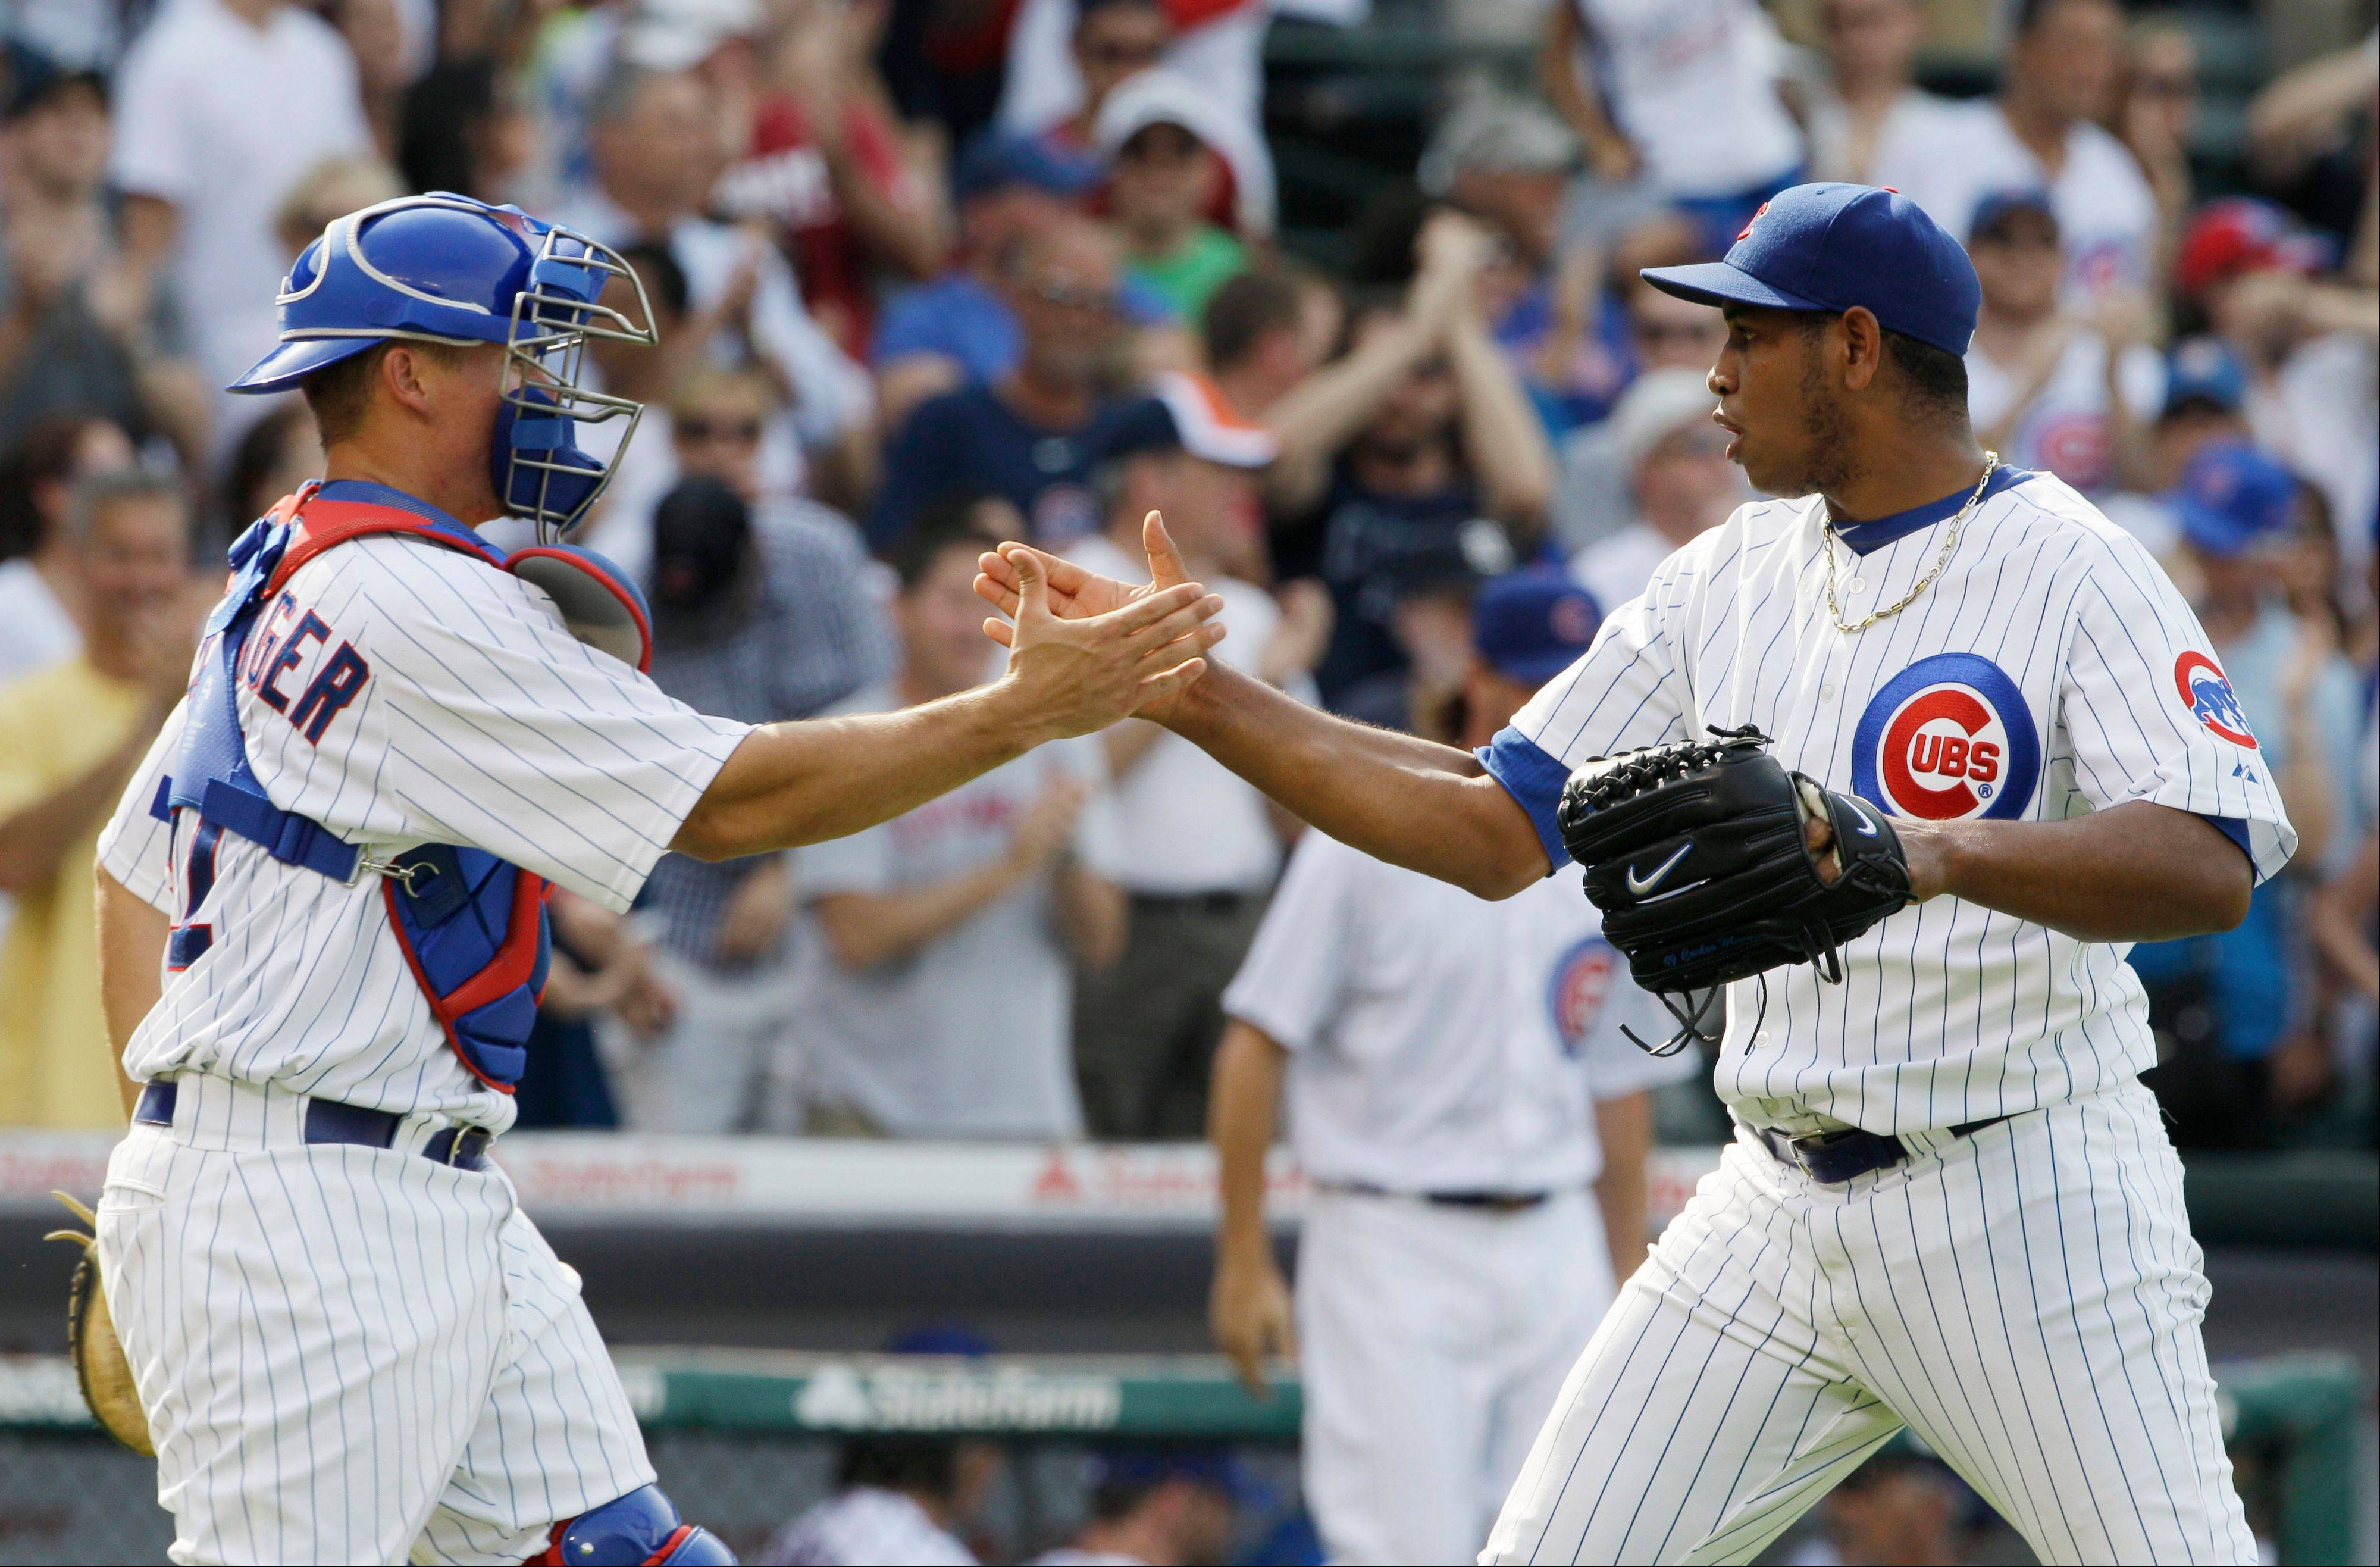 Cubs closer Carlos Marmol, right, celebrates with catcher Steve Clevenger after beating the Houston Astros 4-0 Friday. Starter Paul Maholm pitched into the ninth before Marmol closed out the game.